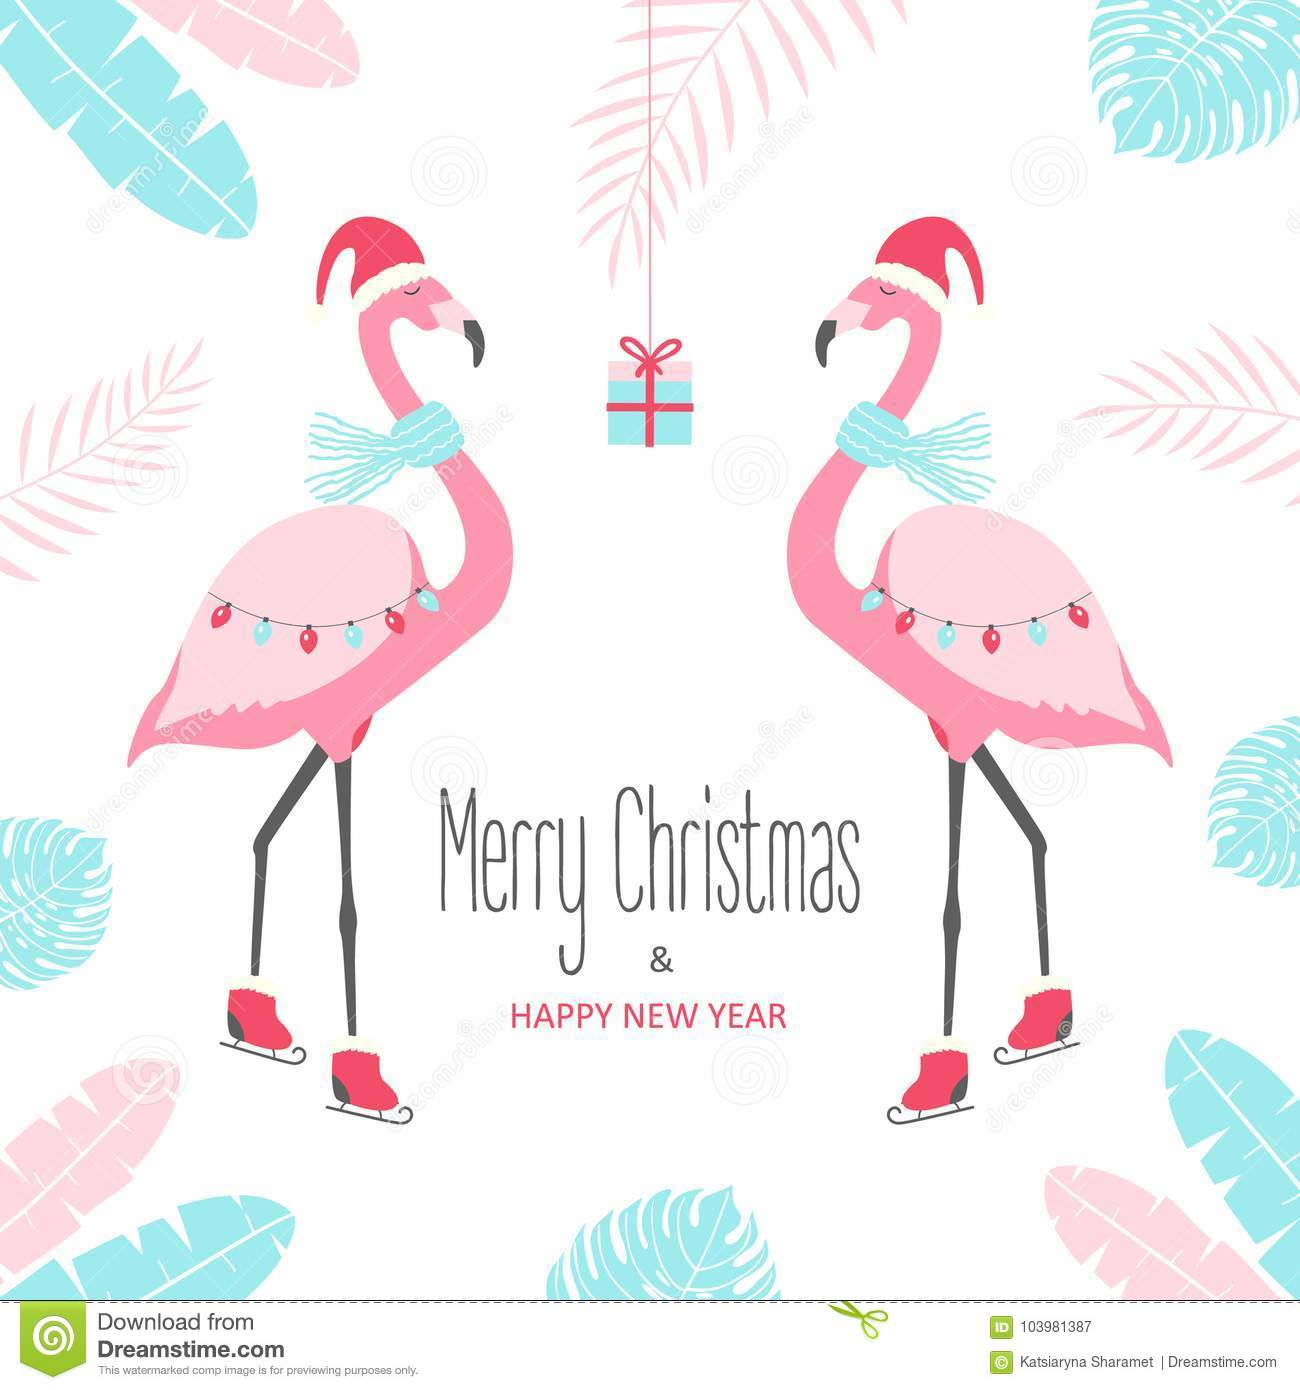 Christmas Card With Flamingo. Stock Vector - Illustration of holiday ...